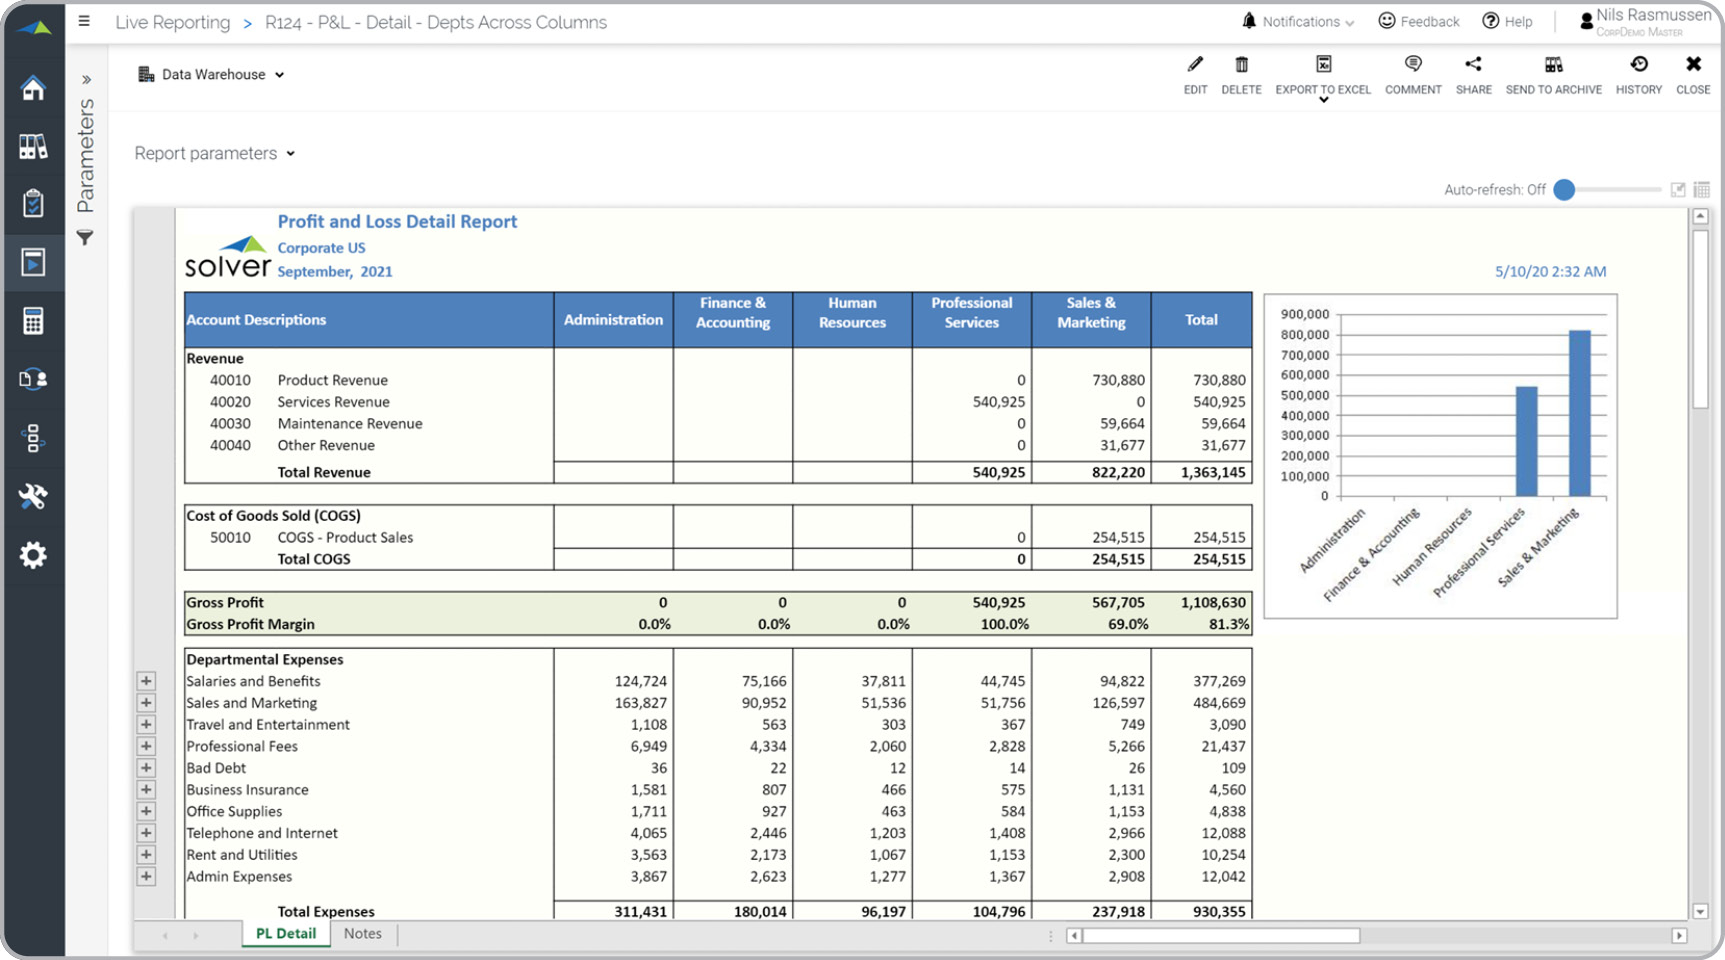 profit and loss department across columns